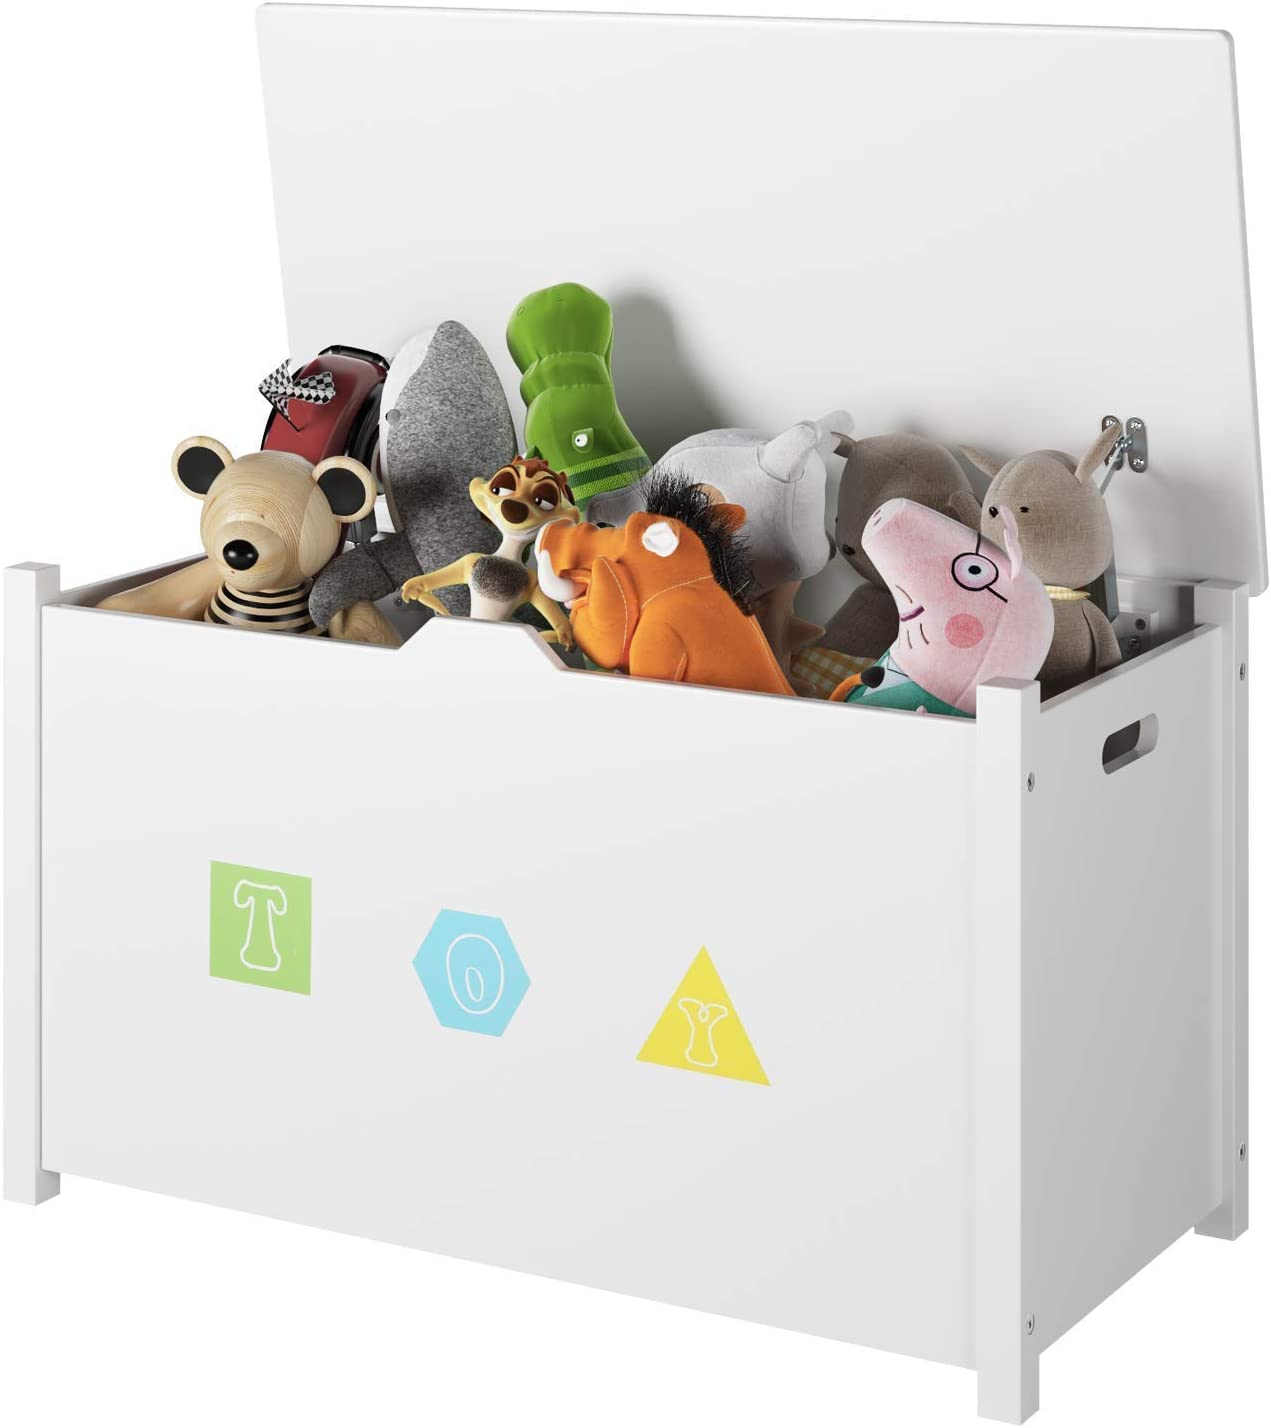 Homfa Children Toy Storage Cabinet with Lid Handles Wooden Storage Chest Toy Box for Nursery Bedroom Playroom White 80x39.8x46cm